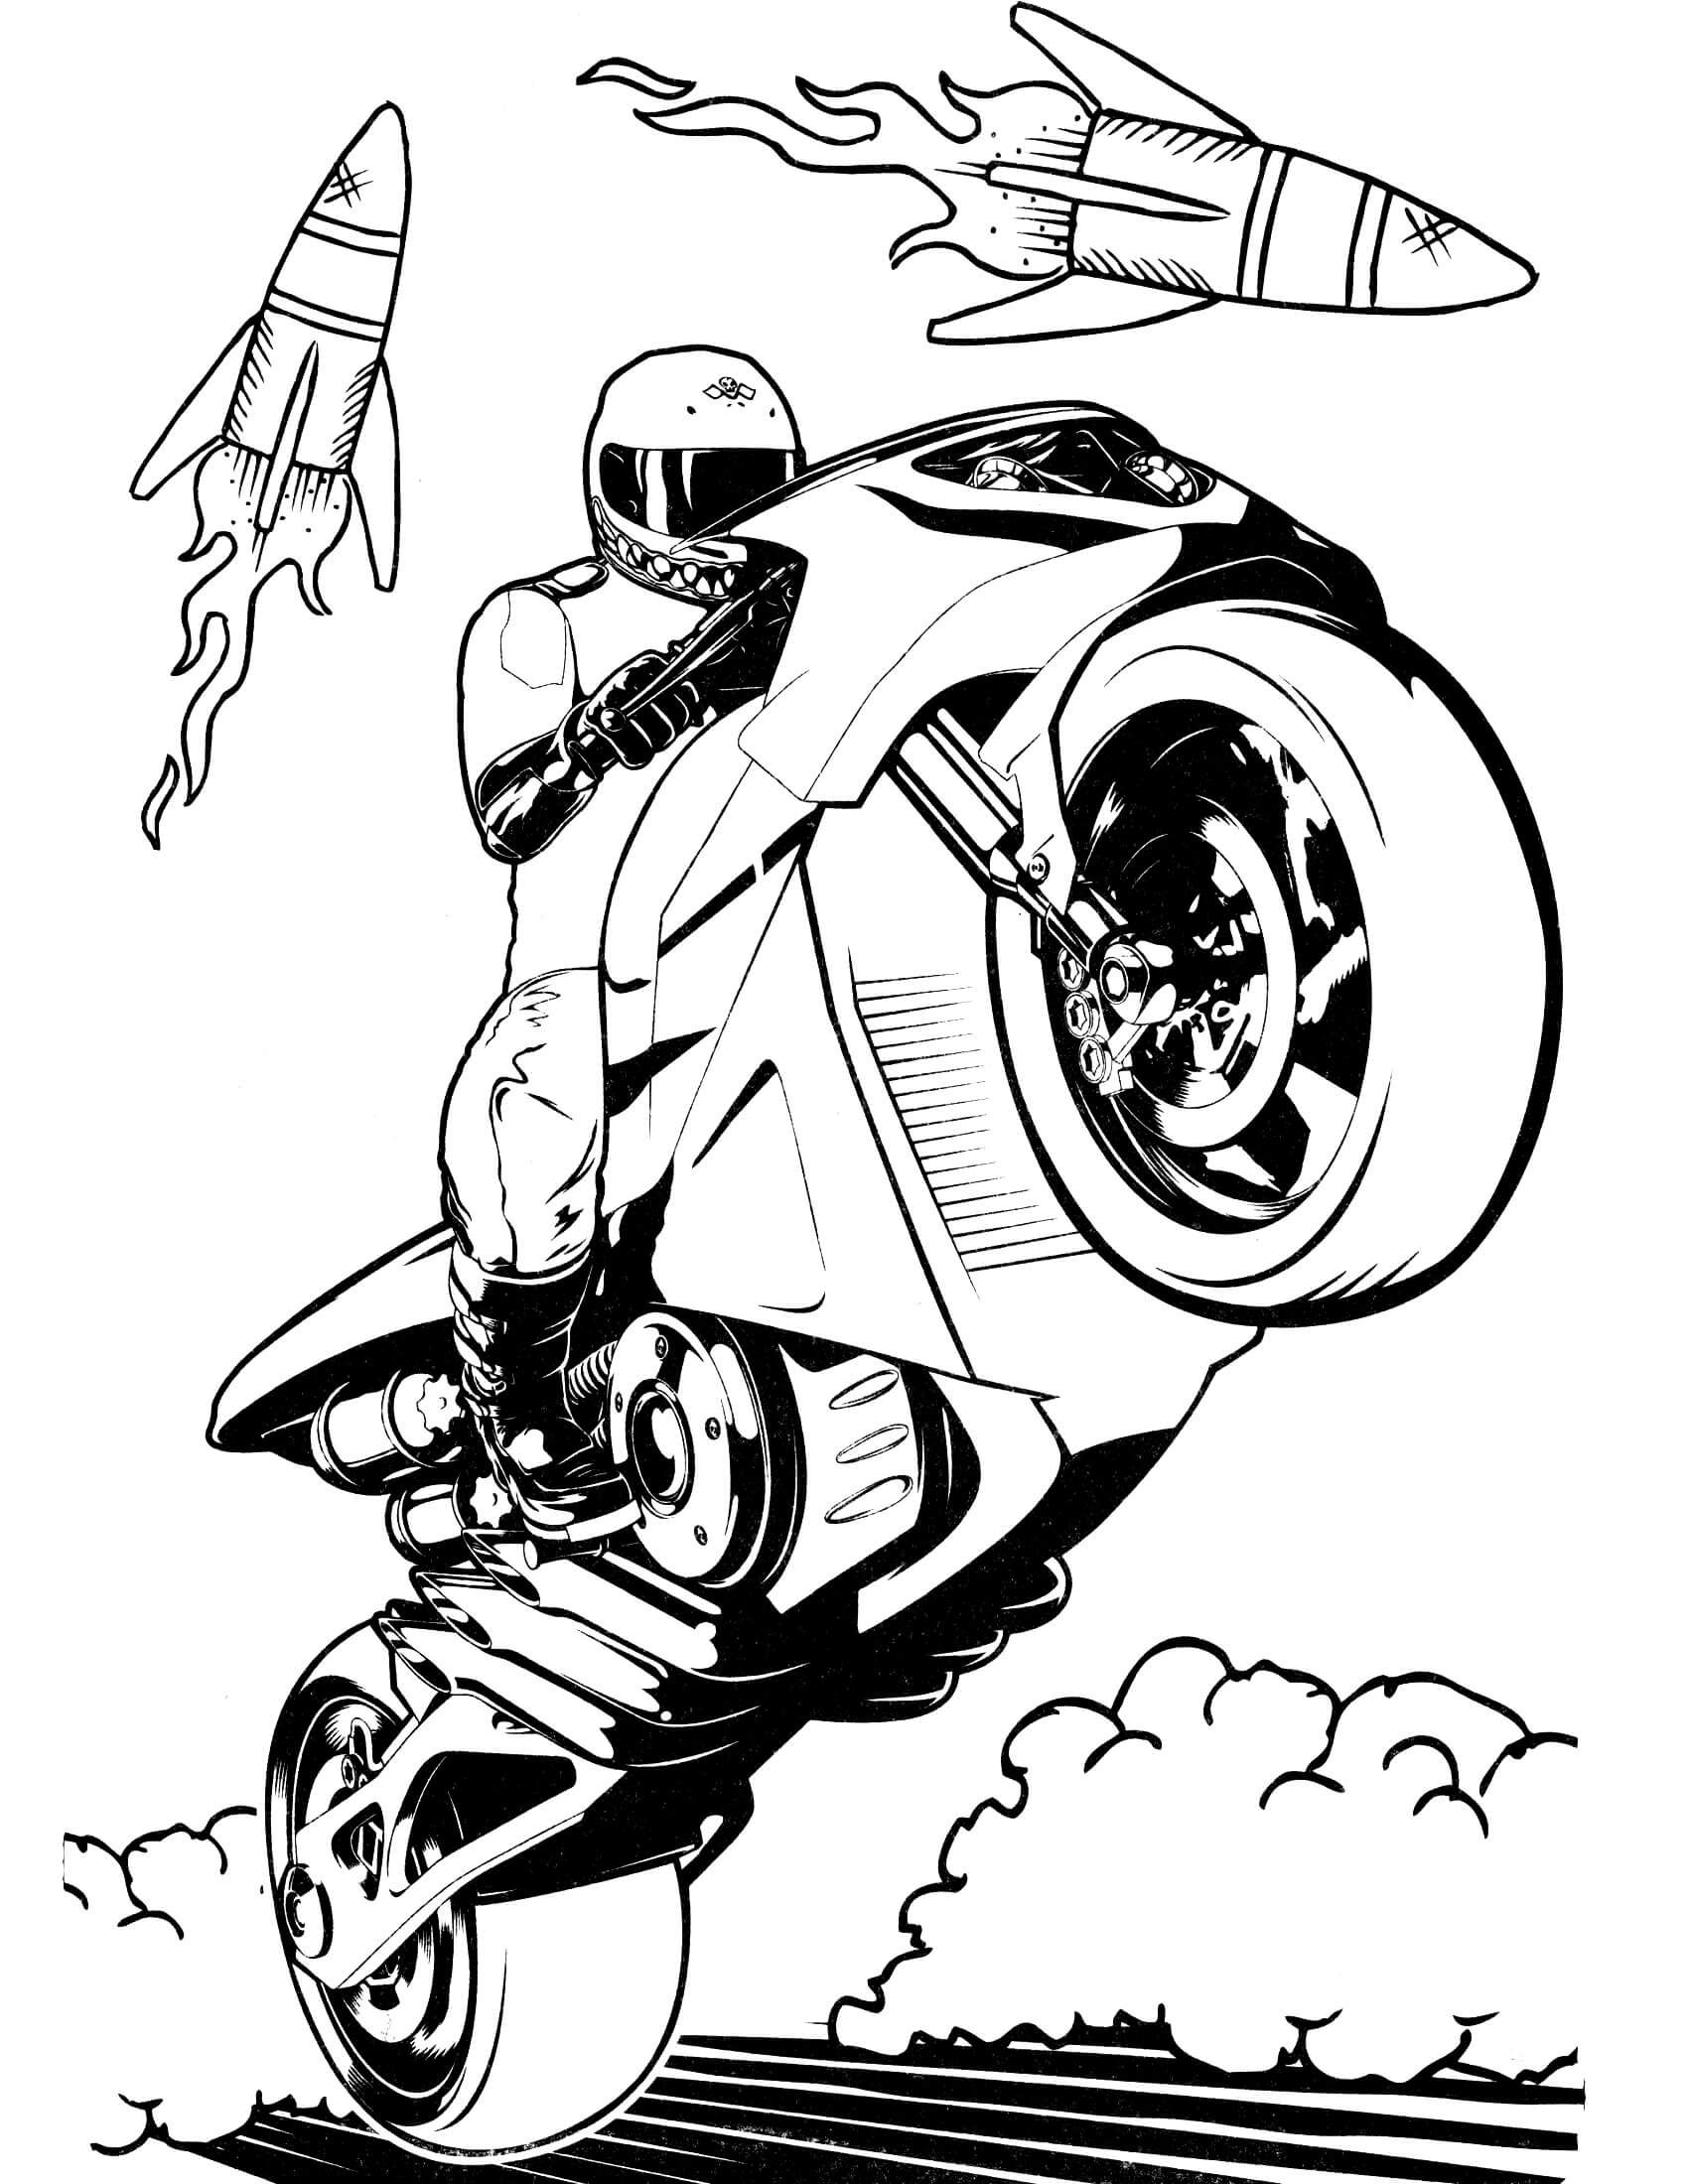 hot wheels images to print free printable hot wheels coloring pages for kids hot to images wheels print